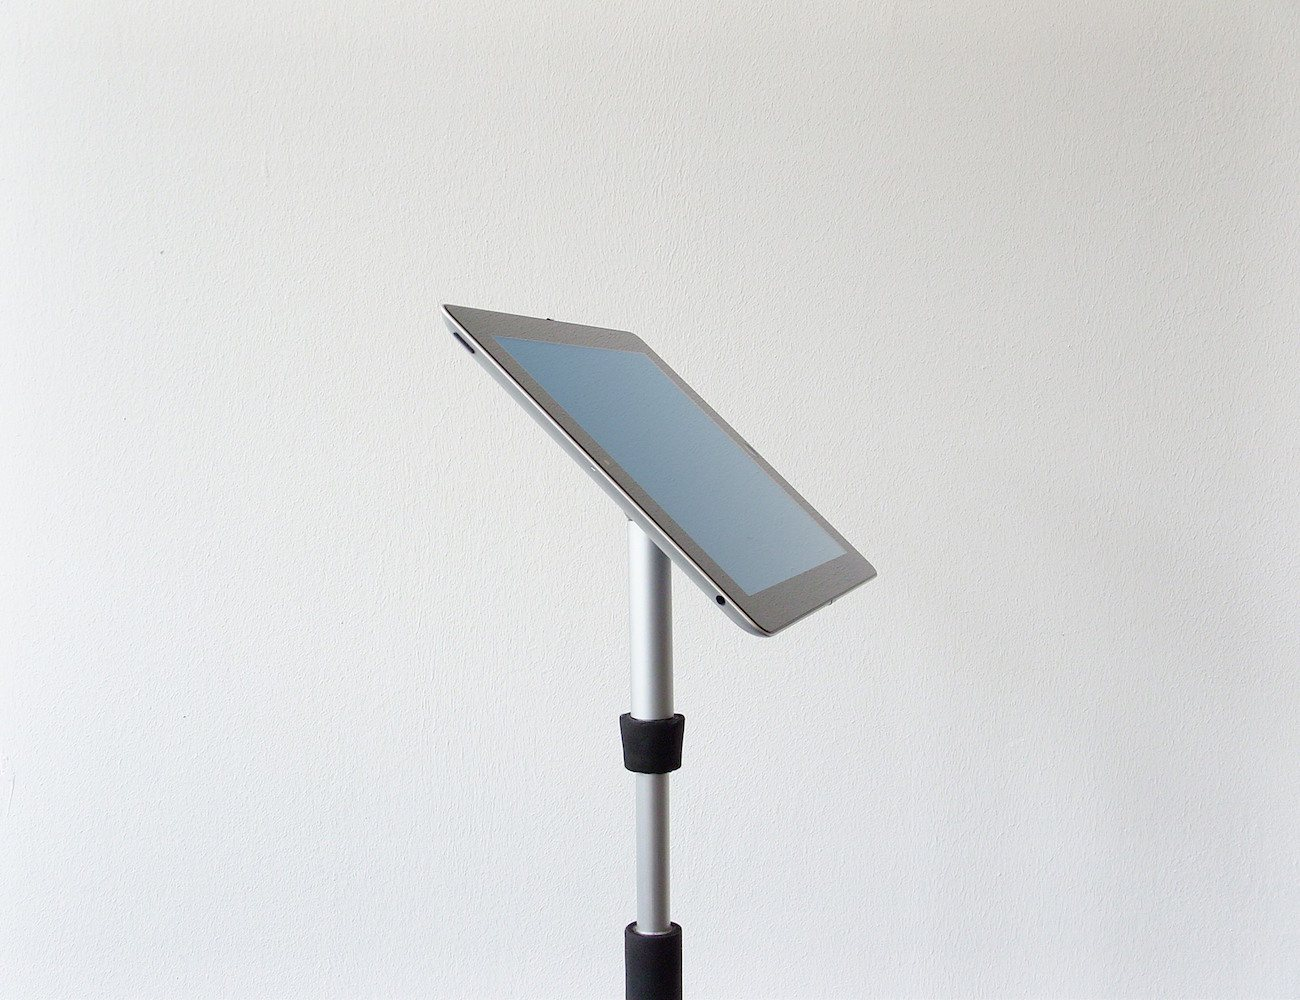 Mangroovv | The Tablet Stand Other Tablet Stands Want to Be